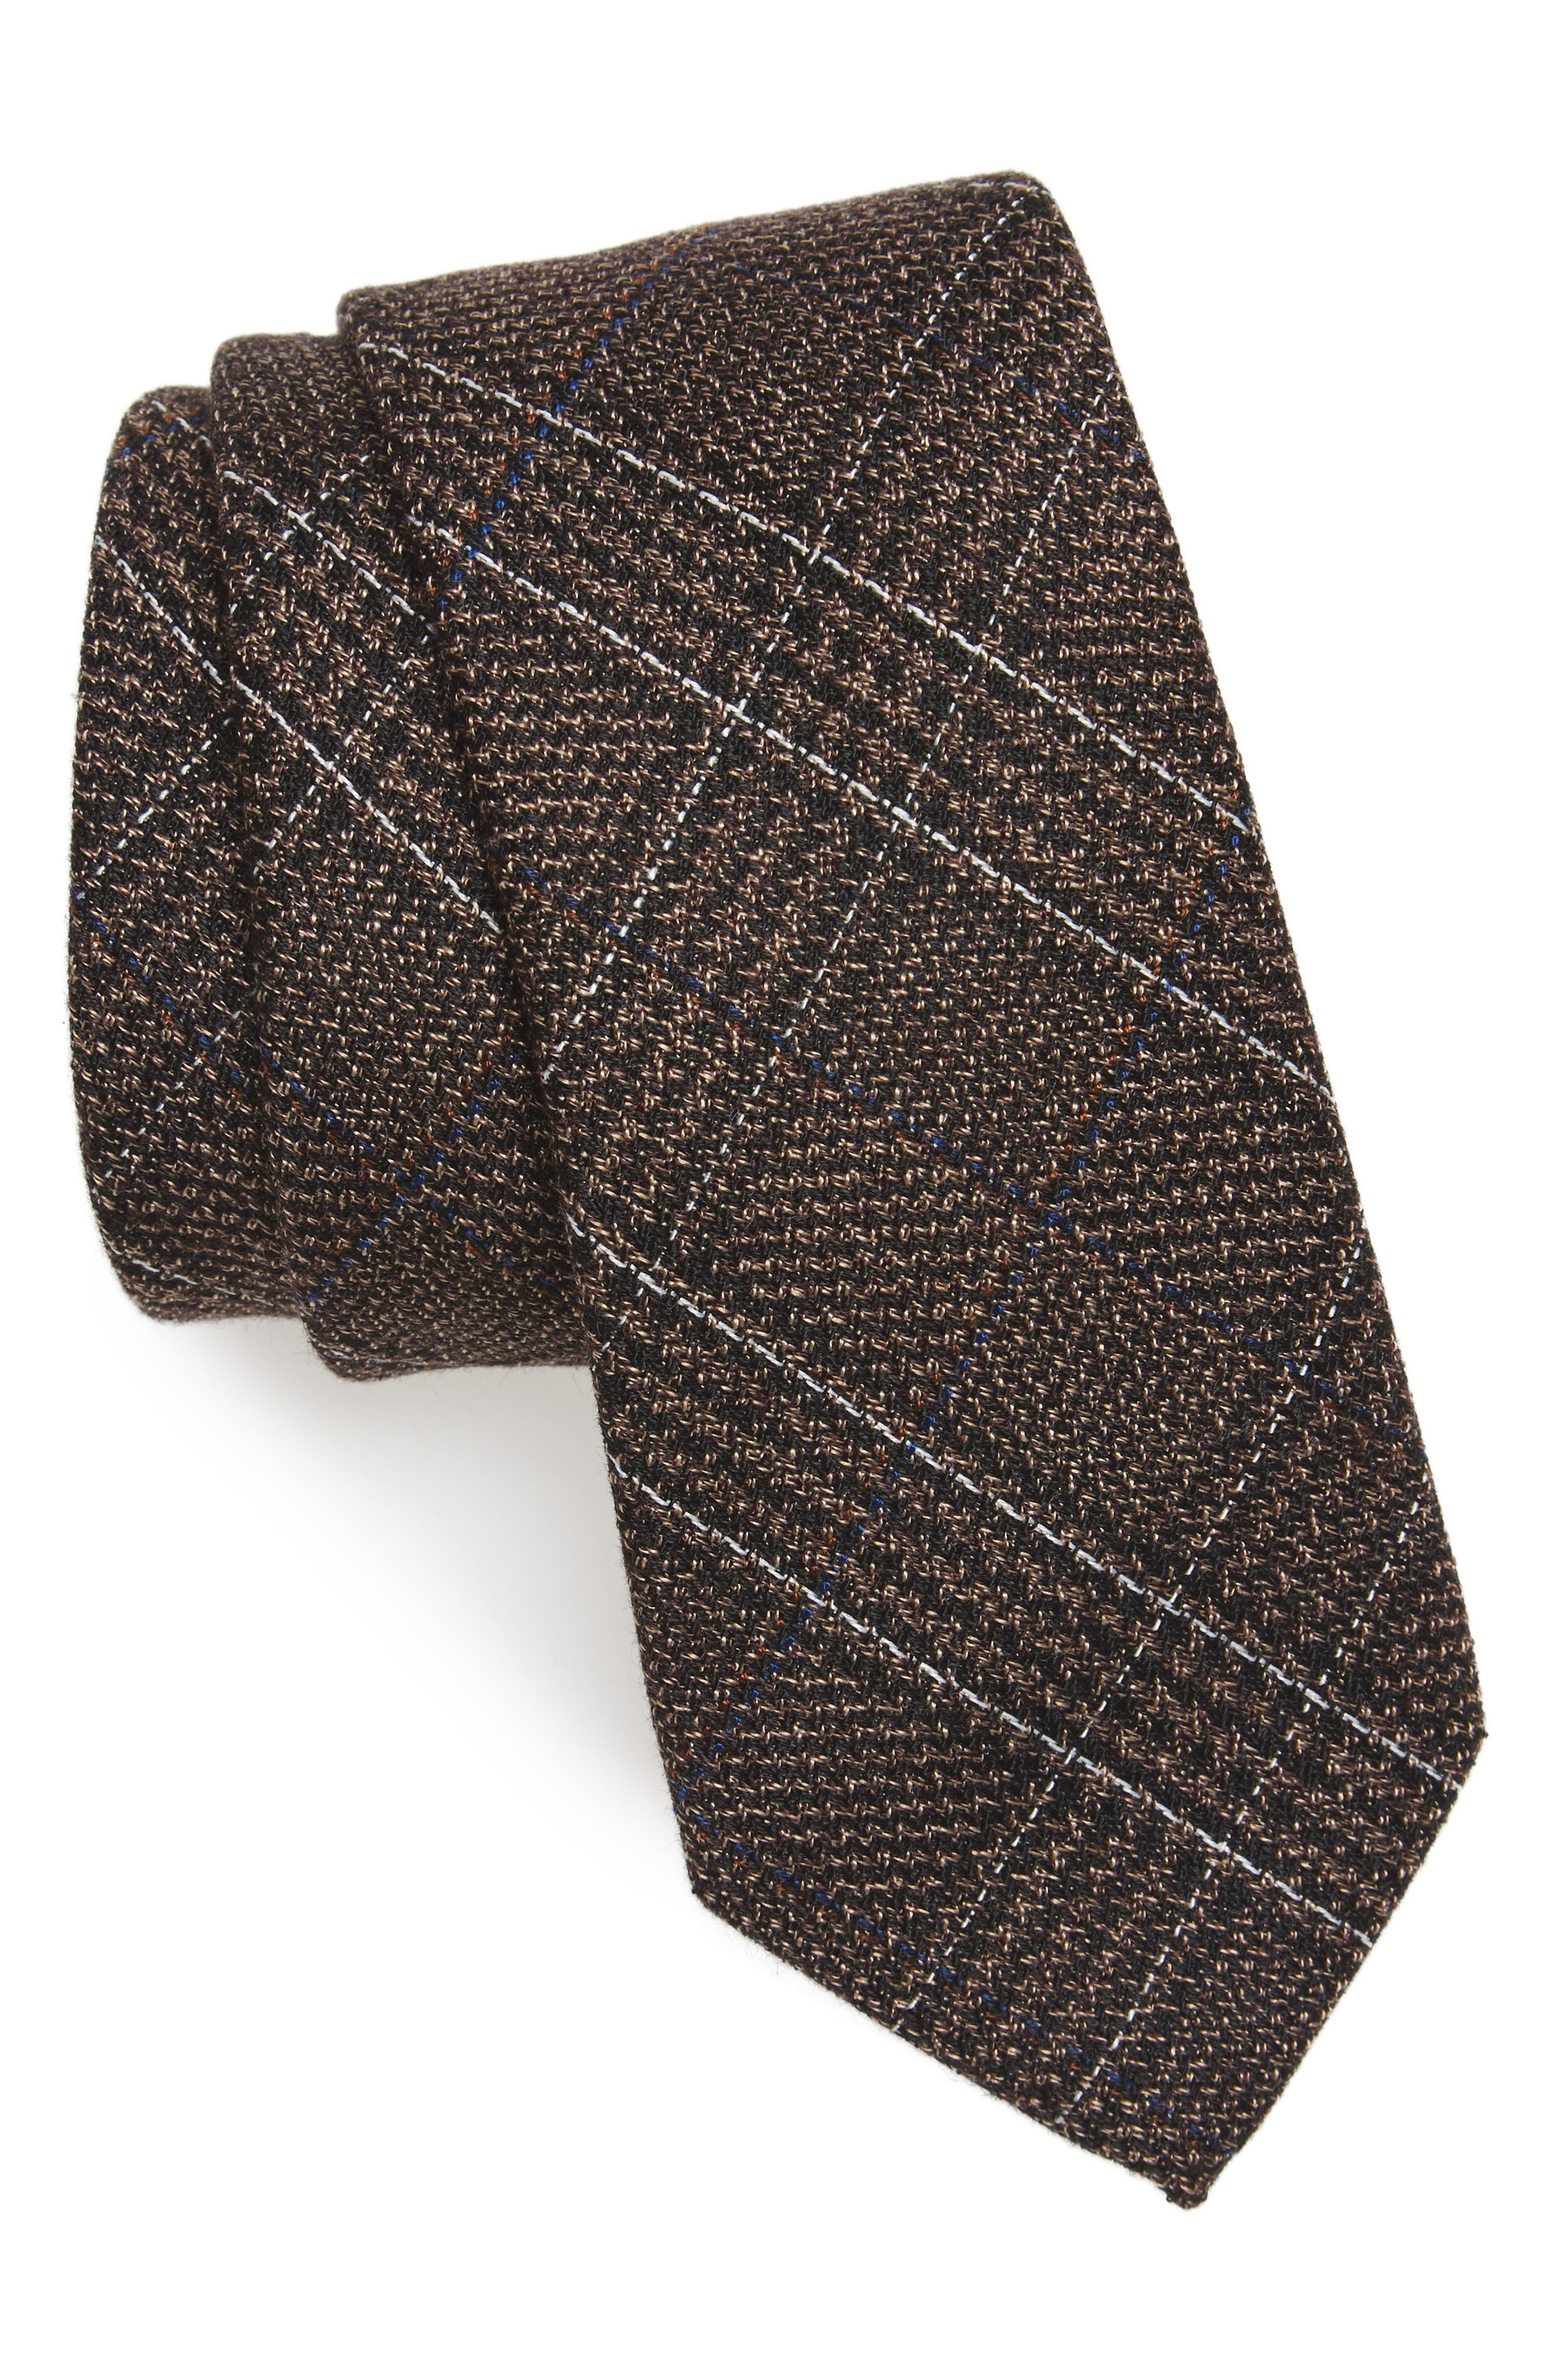 Eastview Check Skinny Tie,                             Main thumbnail 1, color,                             200